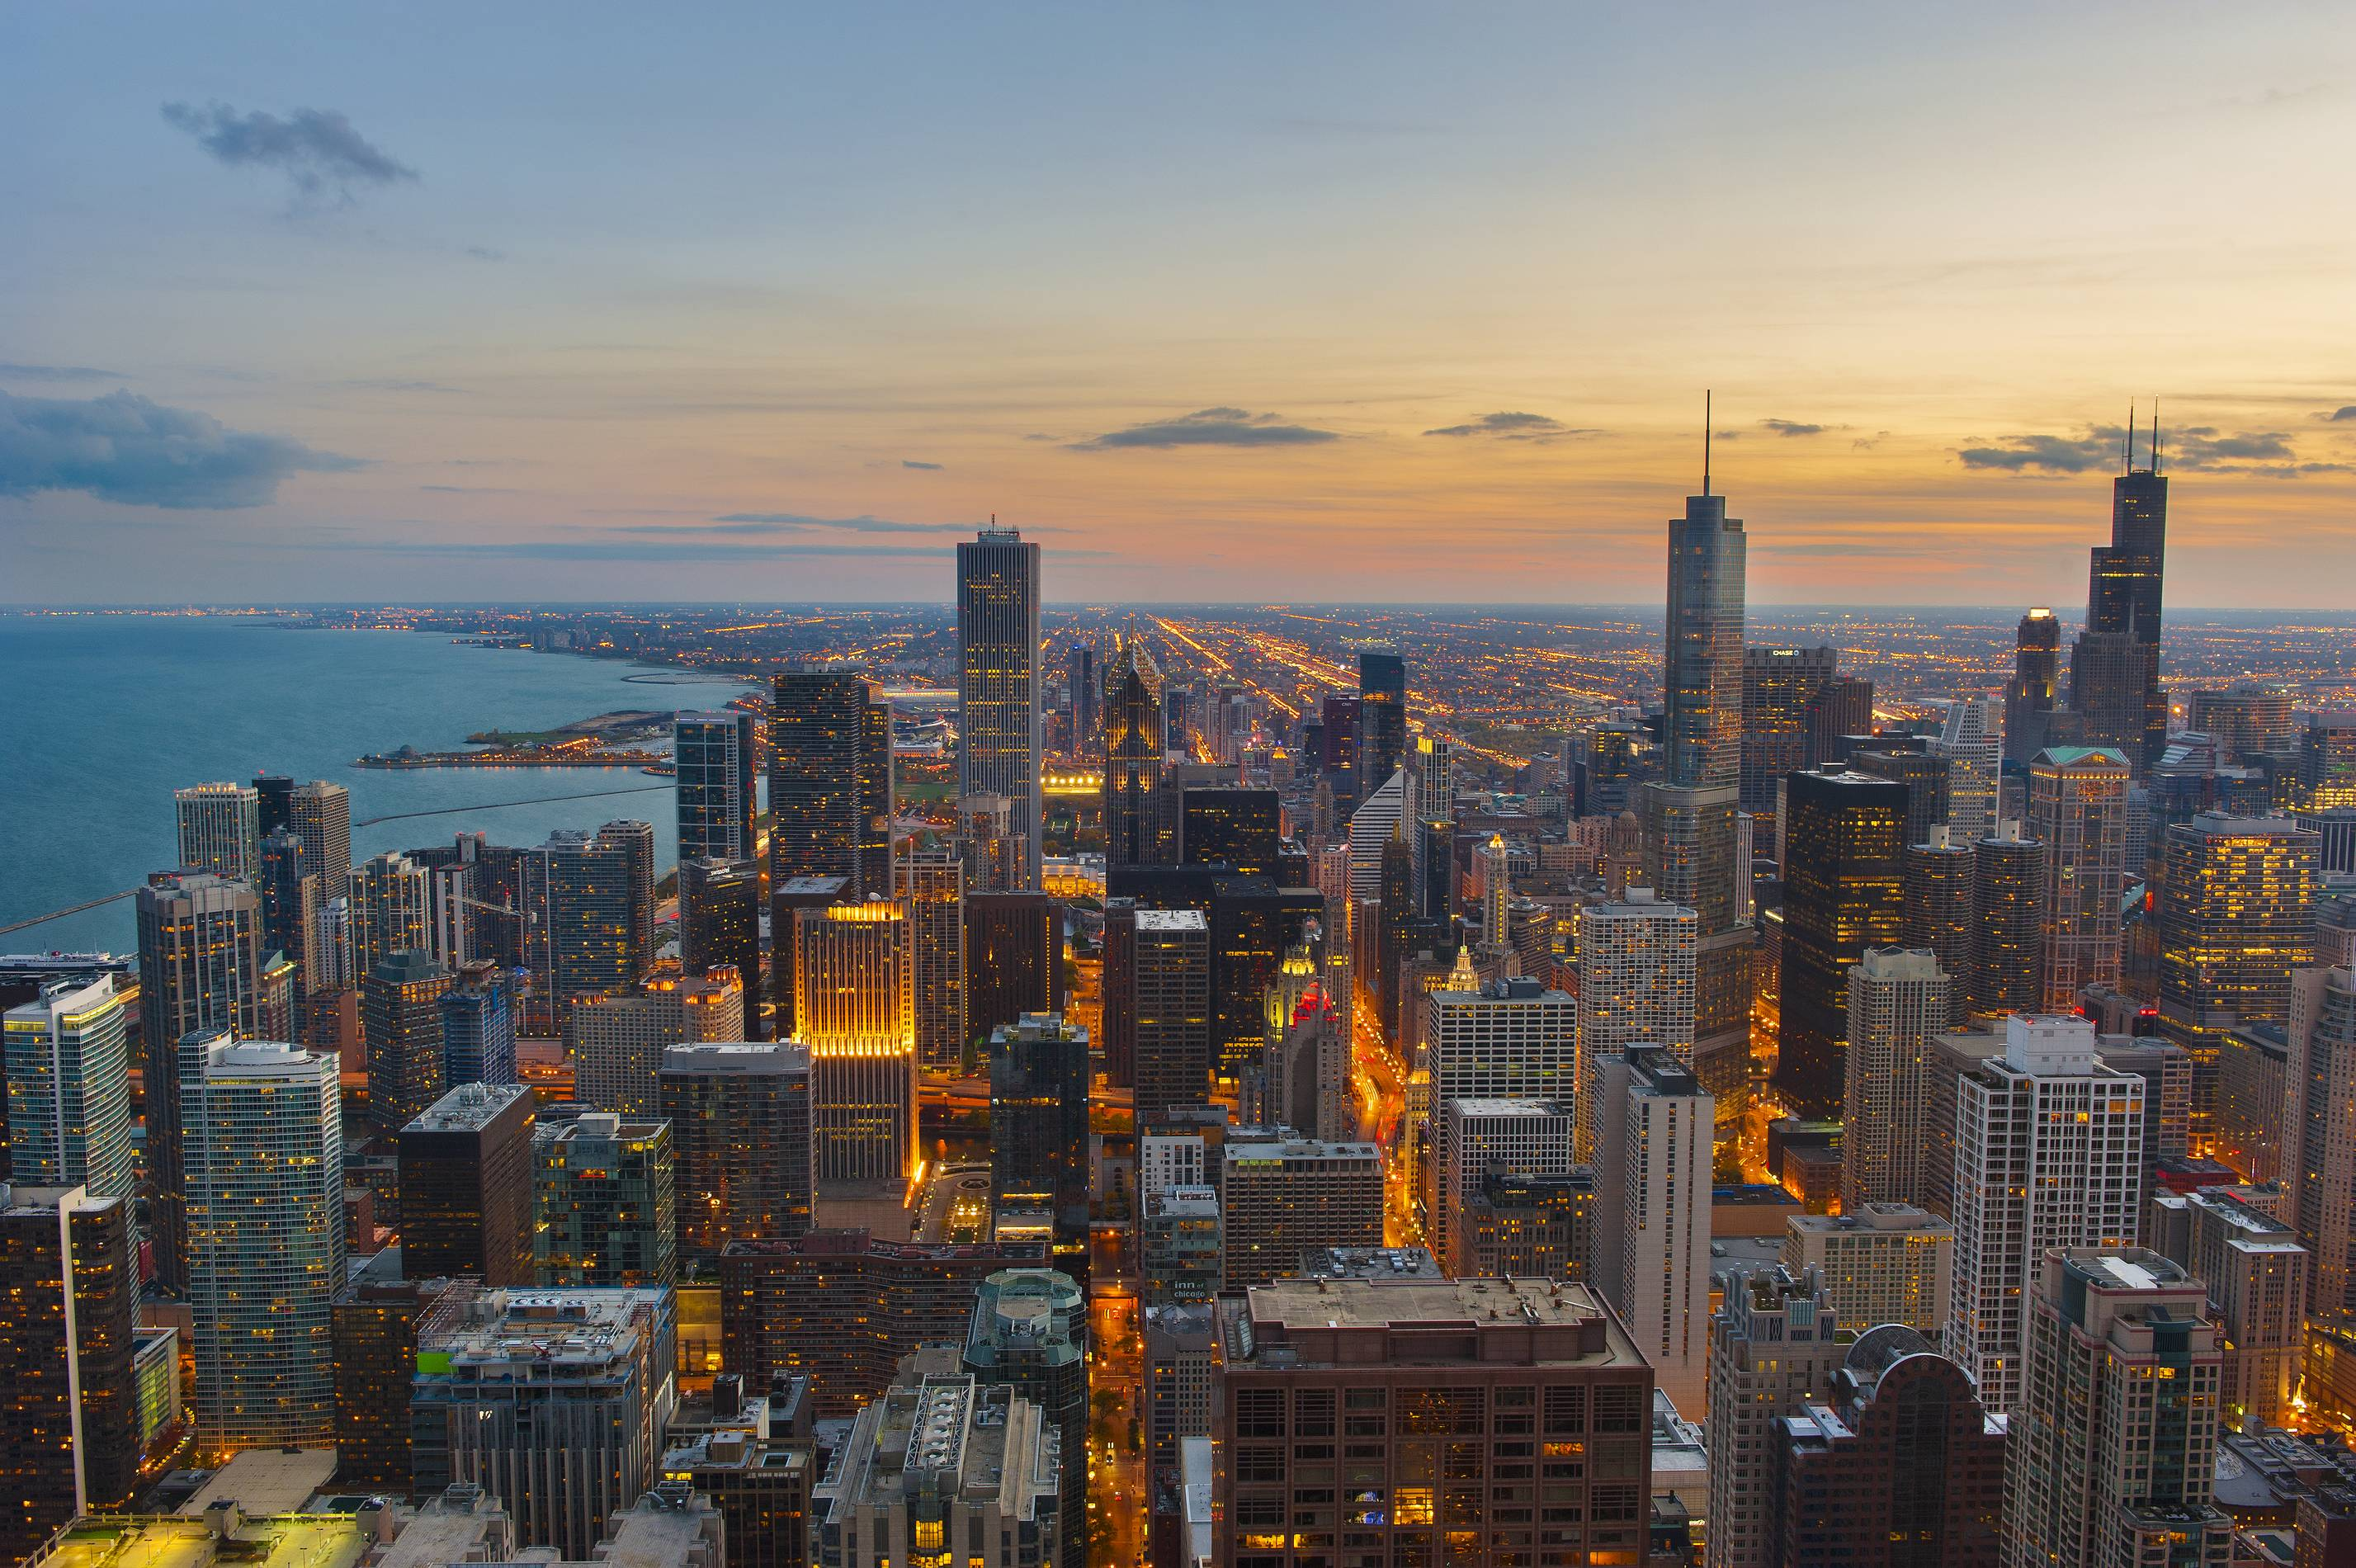 Best Places to Watch the Sunset in Chicago